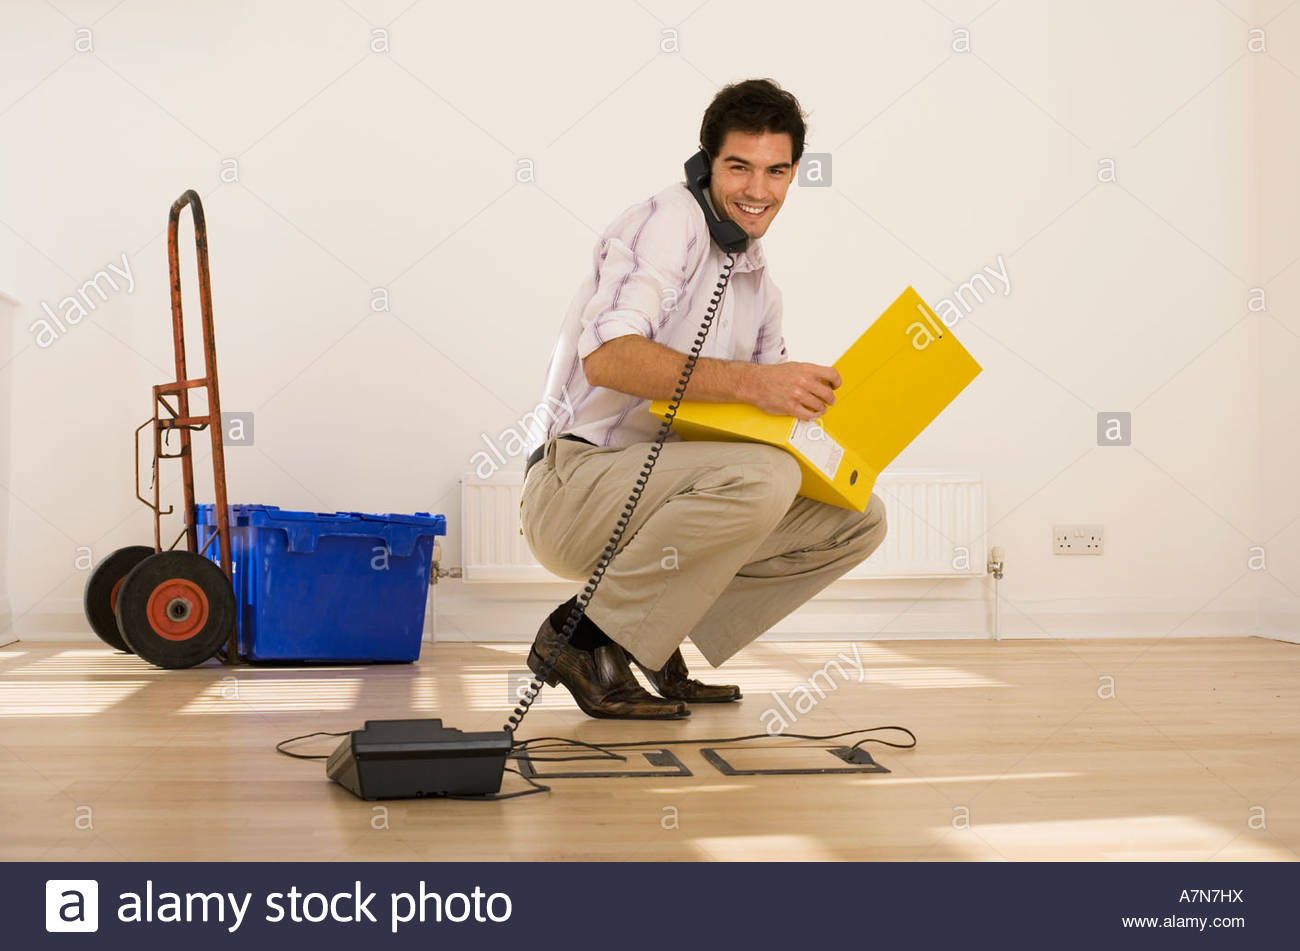 Businessman crouching in office using telephone plugged into floor socket opening folder portrait - Stock Image